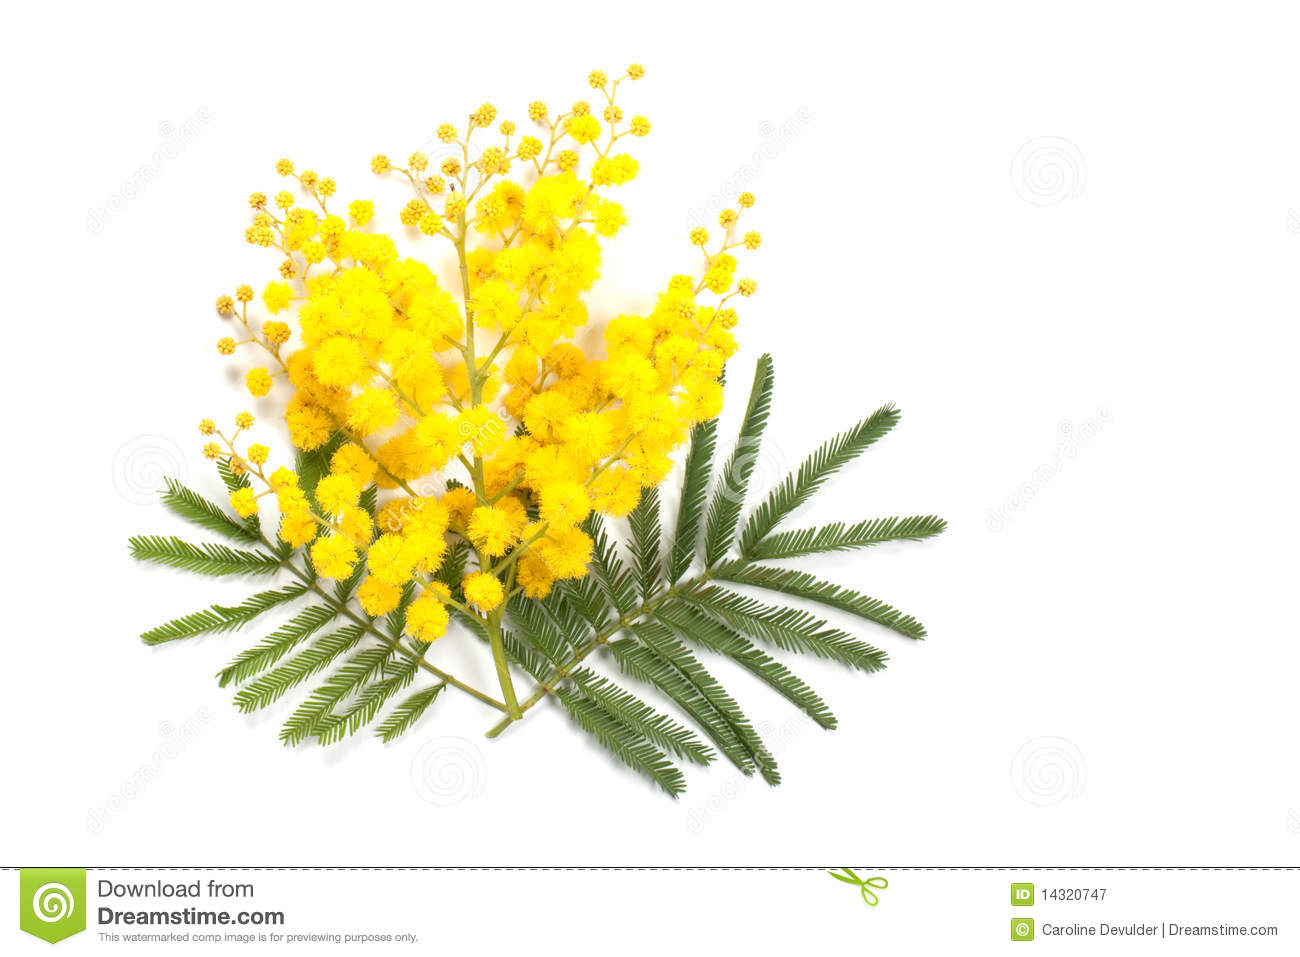 mimosa branch stock image image of fragrant  flower free march clipart calendar 2018 templates free march clip art images